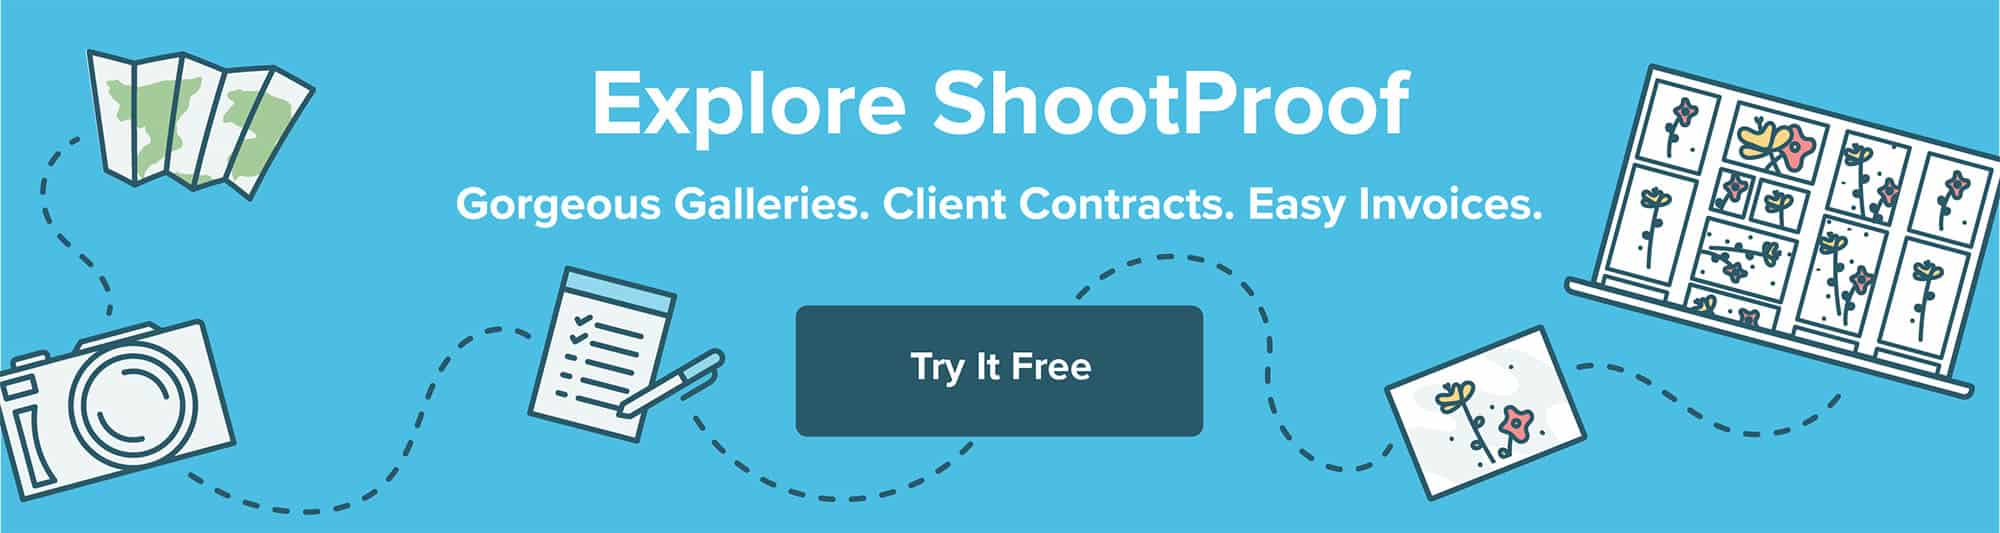 ShootProof makes online galleries, contracts, & invoices for pro photographers. Sell, share, print, download, & MORE. #FocusOnWhatMattersMost